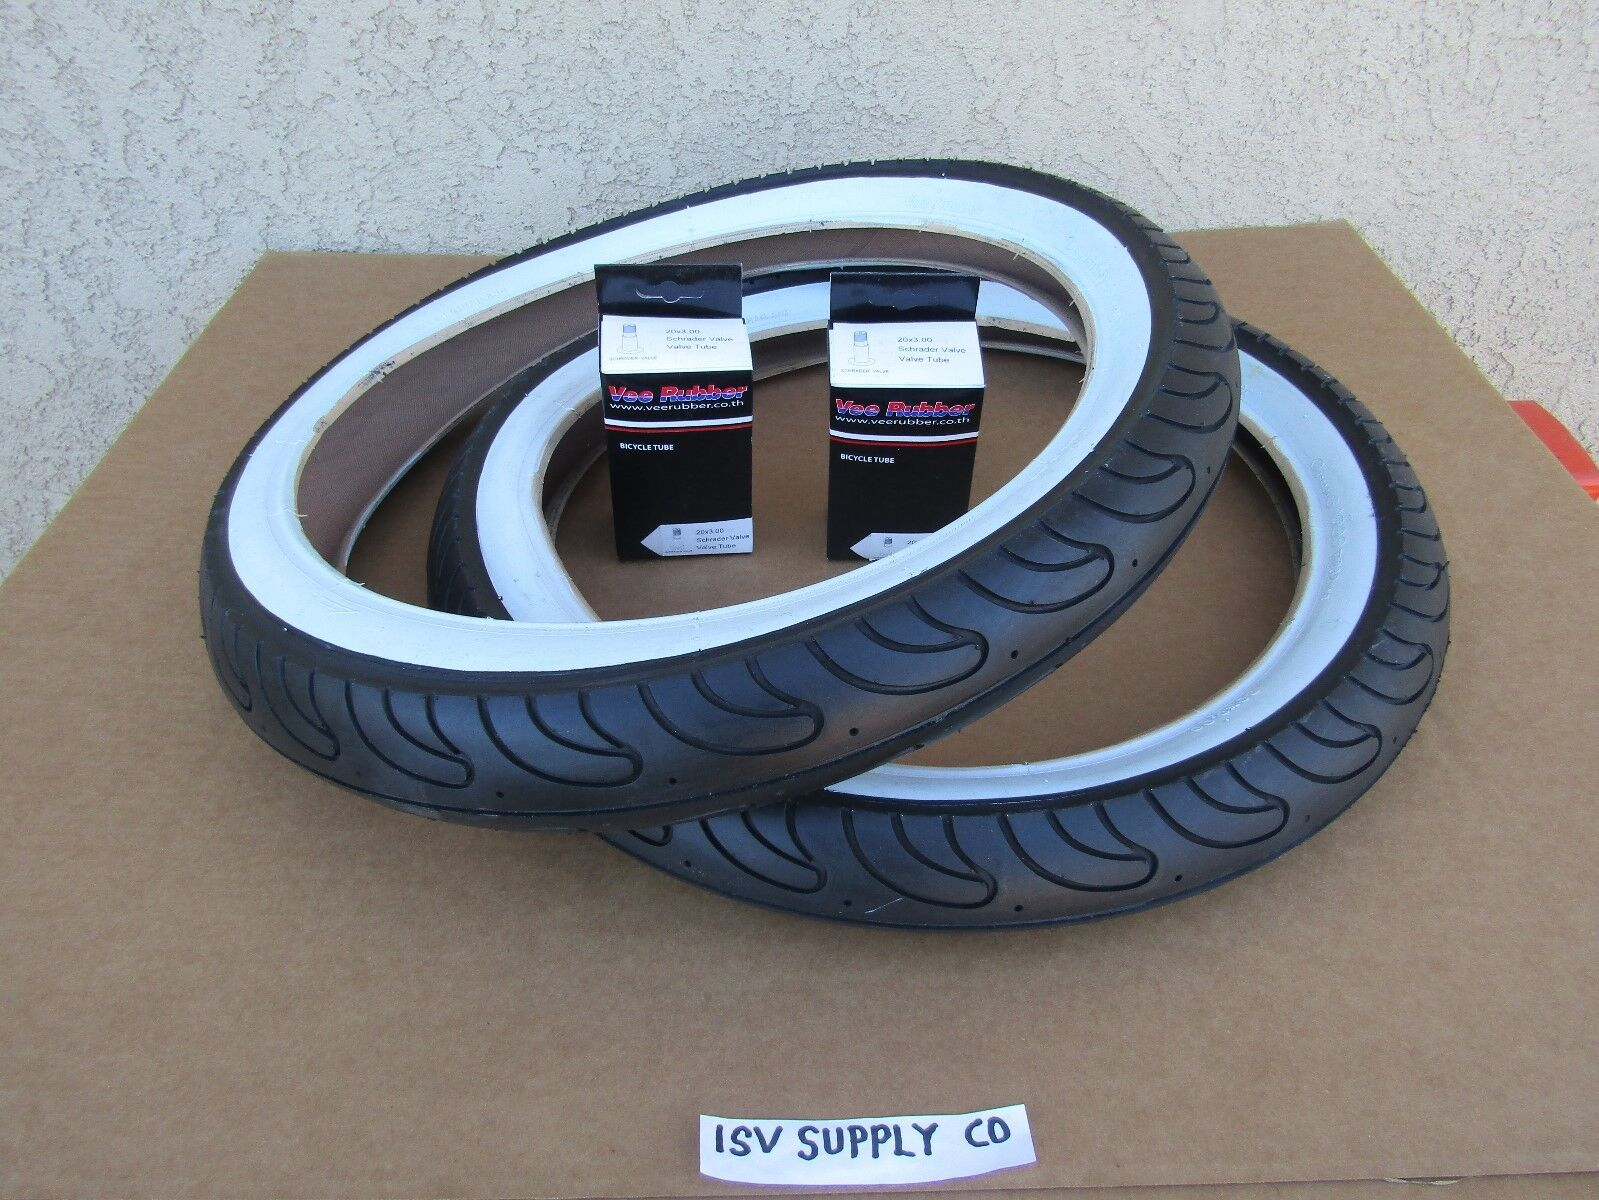 [2] NEW  20'' x 3.00 WHITE-WALL BICYCLE TIRES WITH [2] TUBES FOR SCHOPPER BIKES